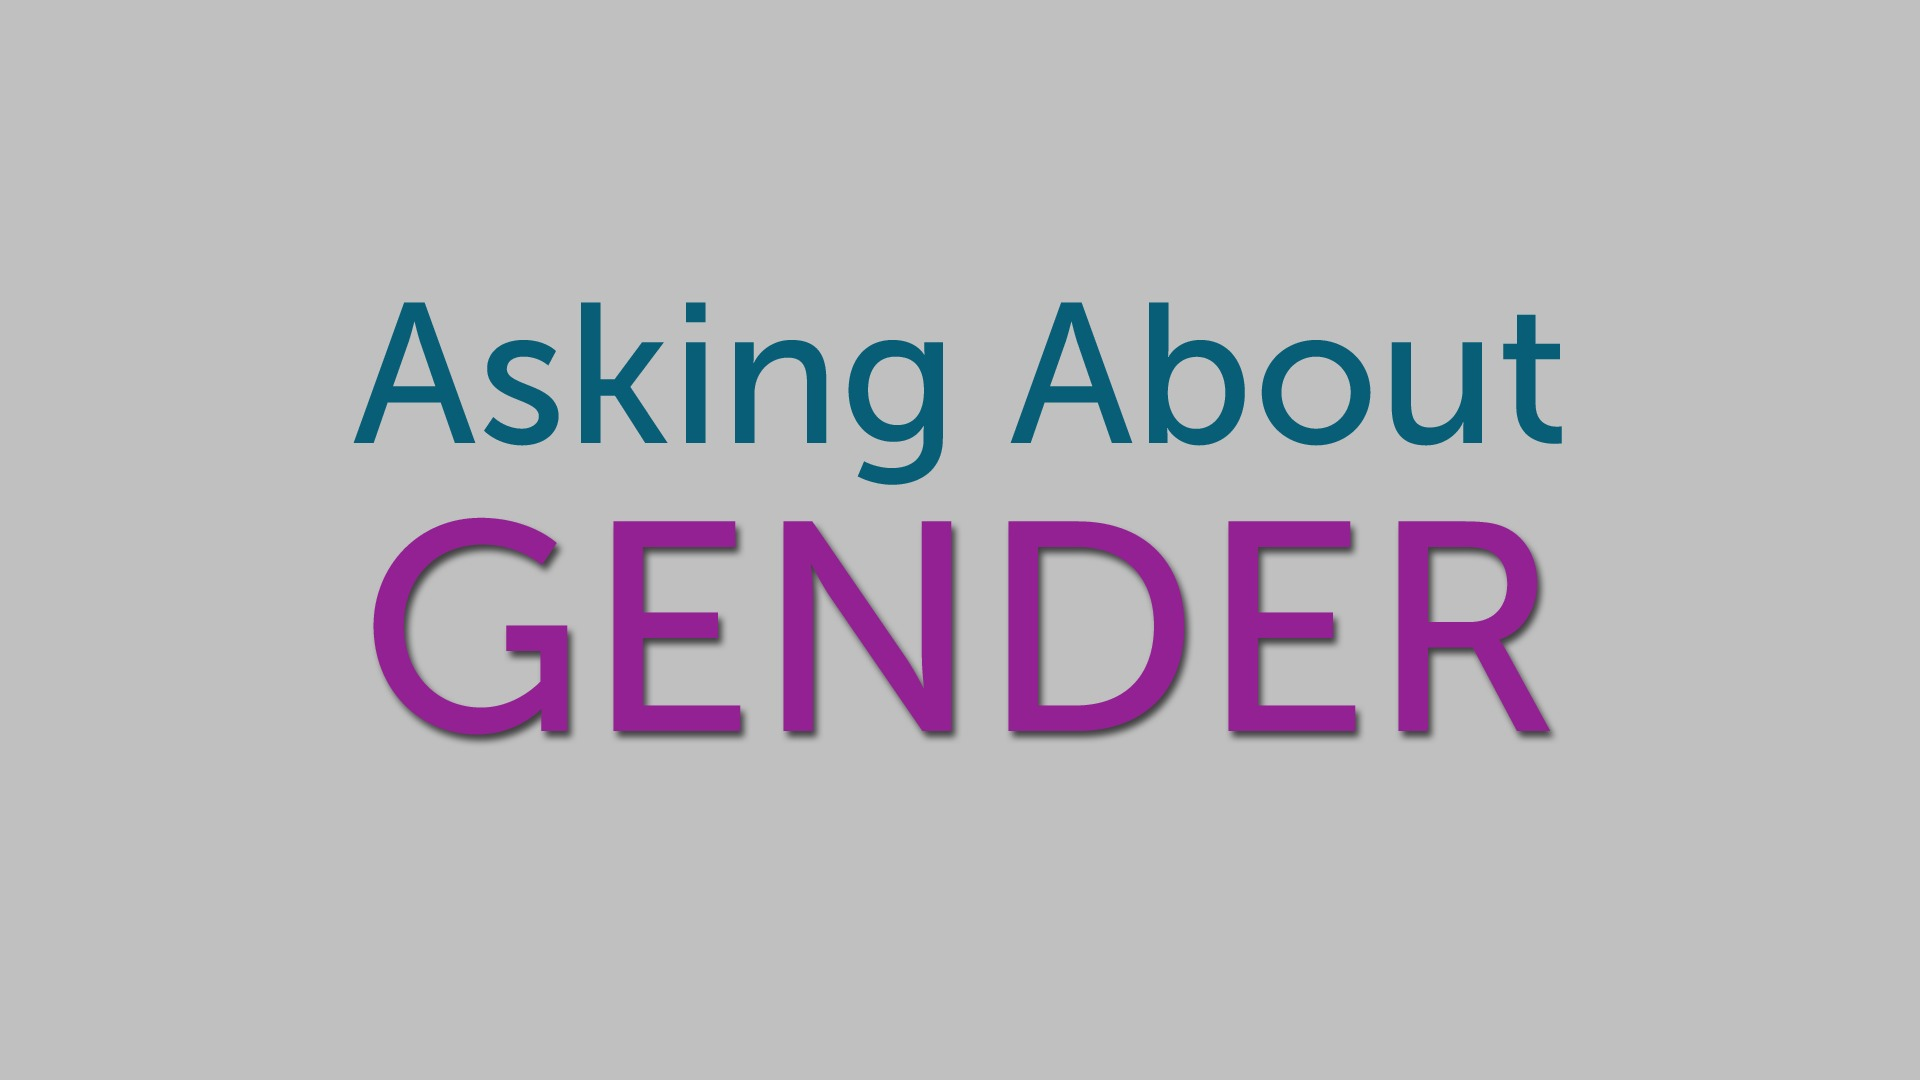 Asking About Gender - Merseycode